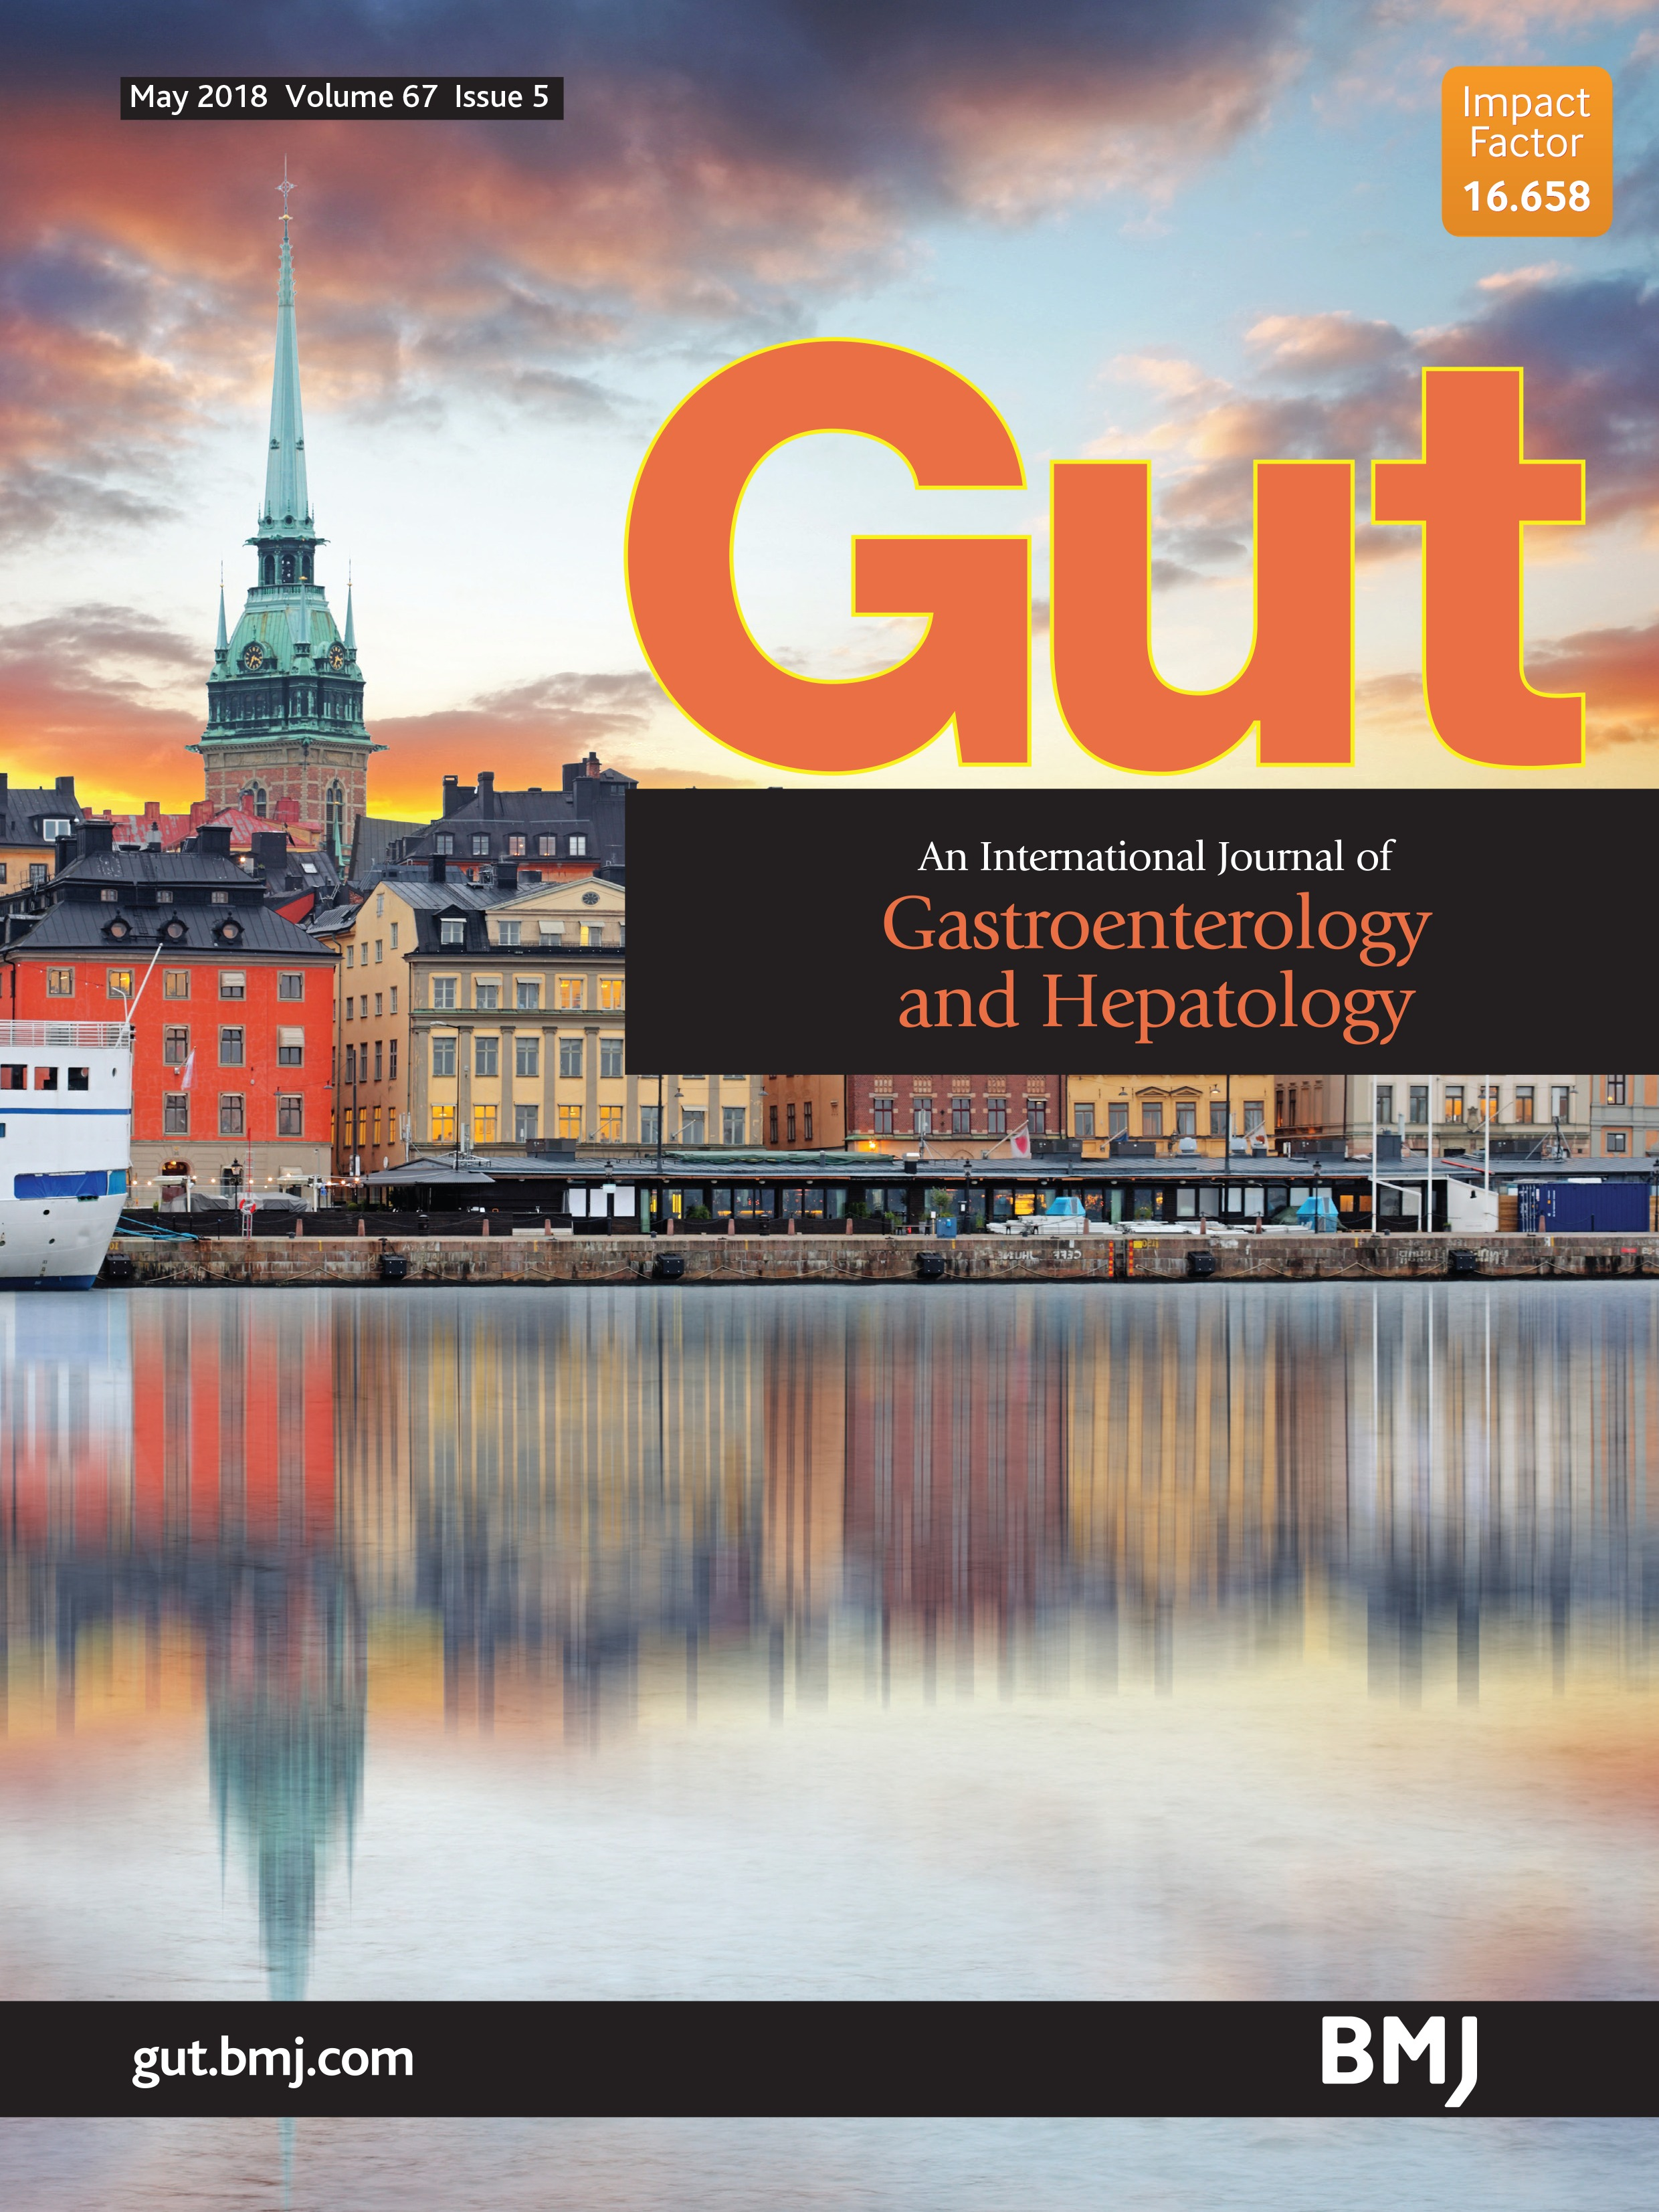 Persistent cough: A question for the gastroenterologist? | Gut